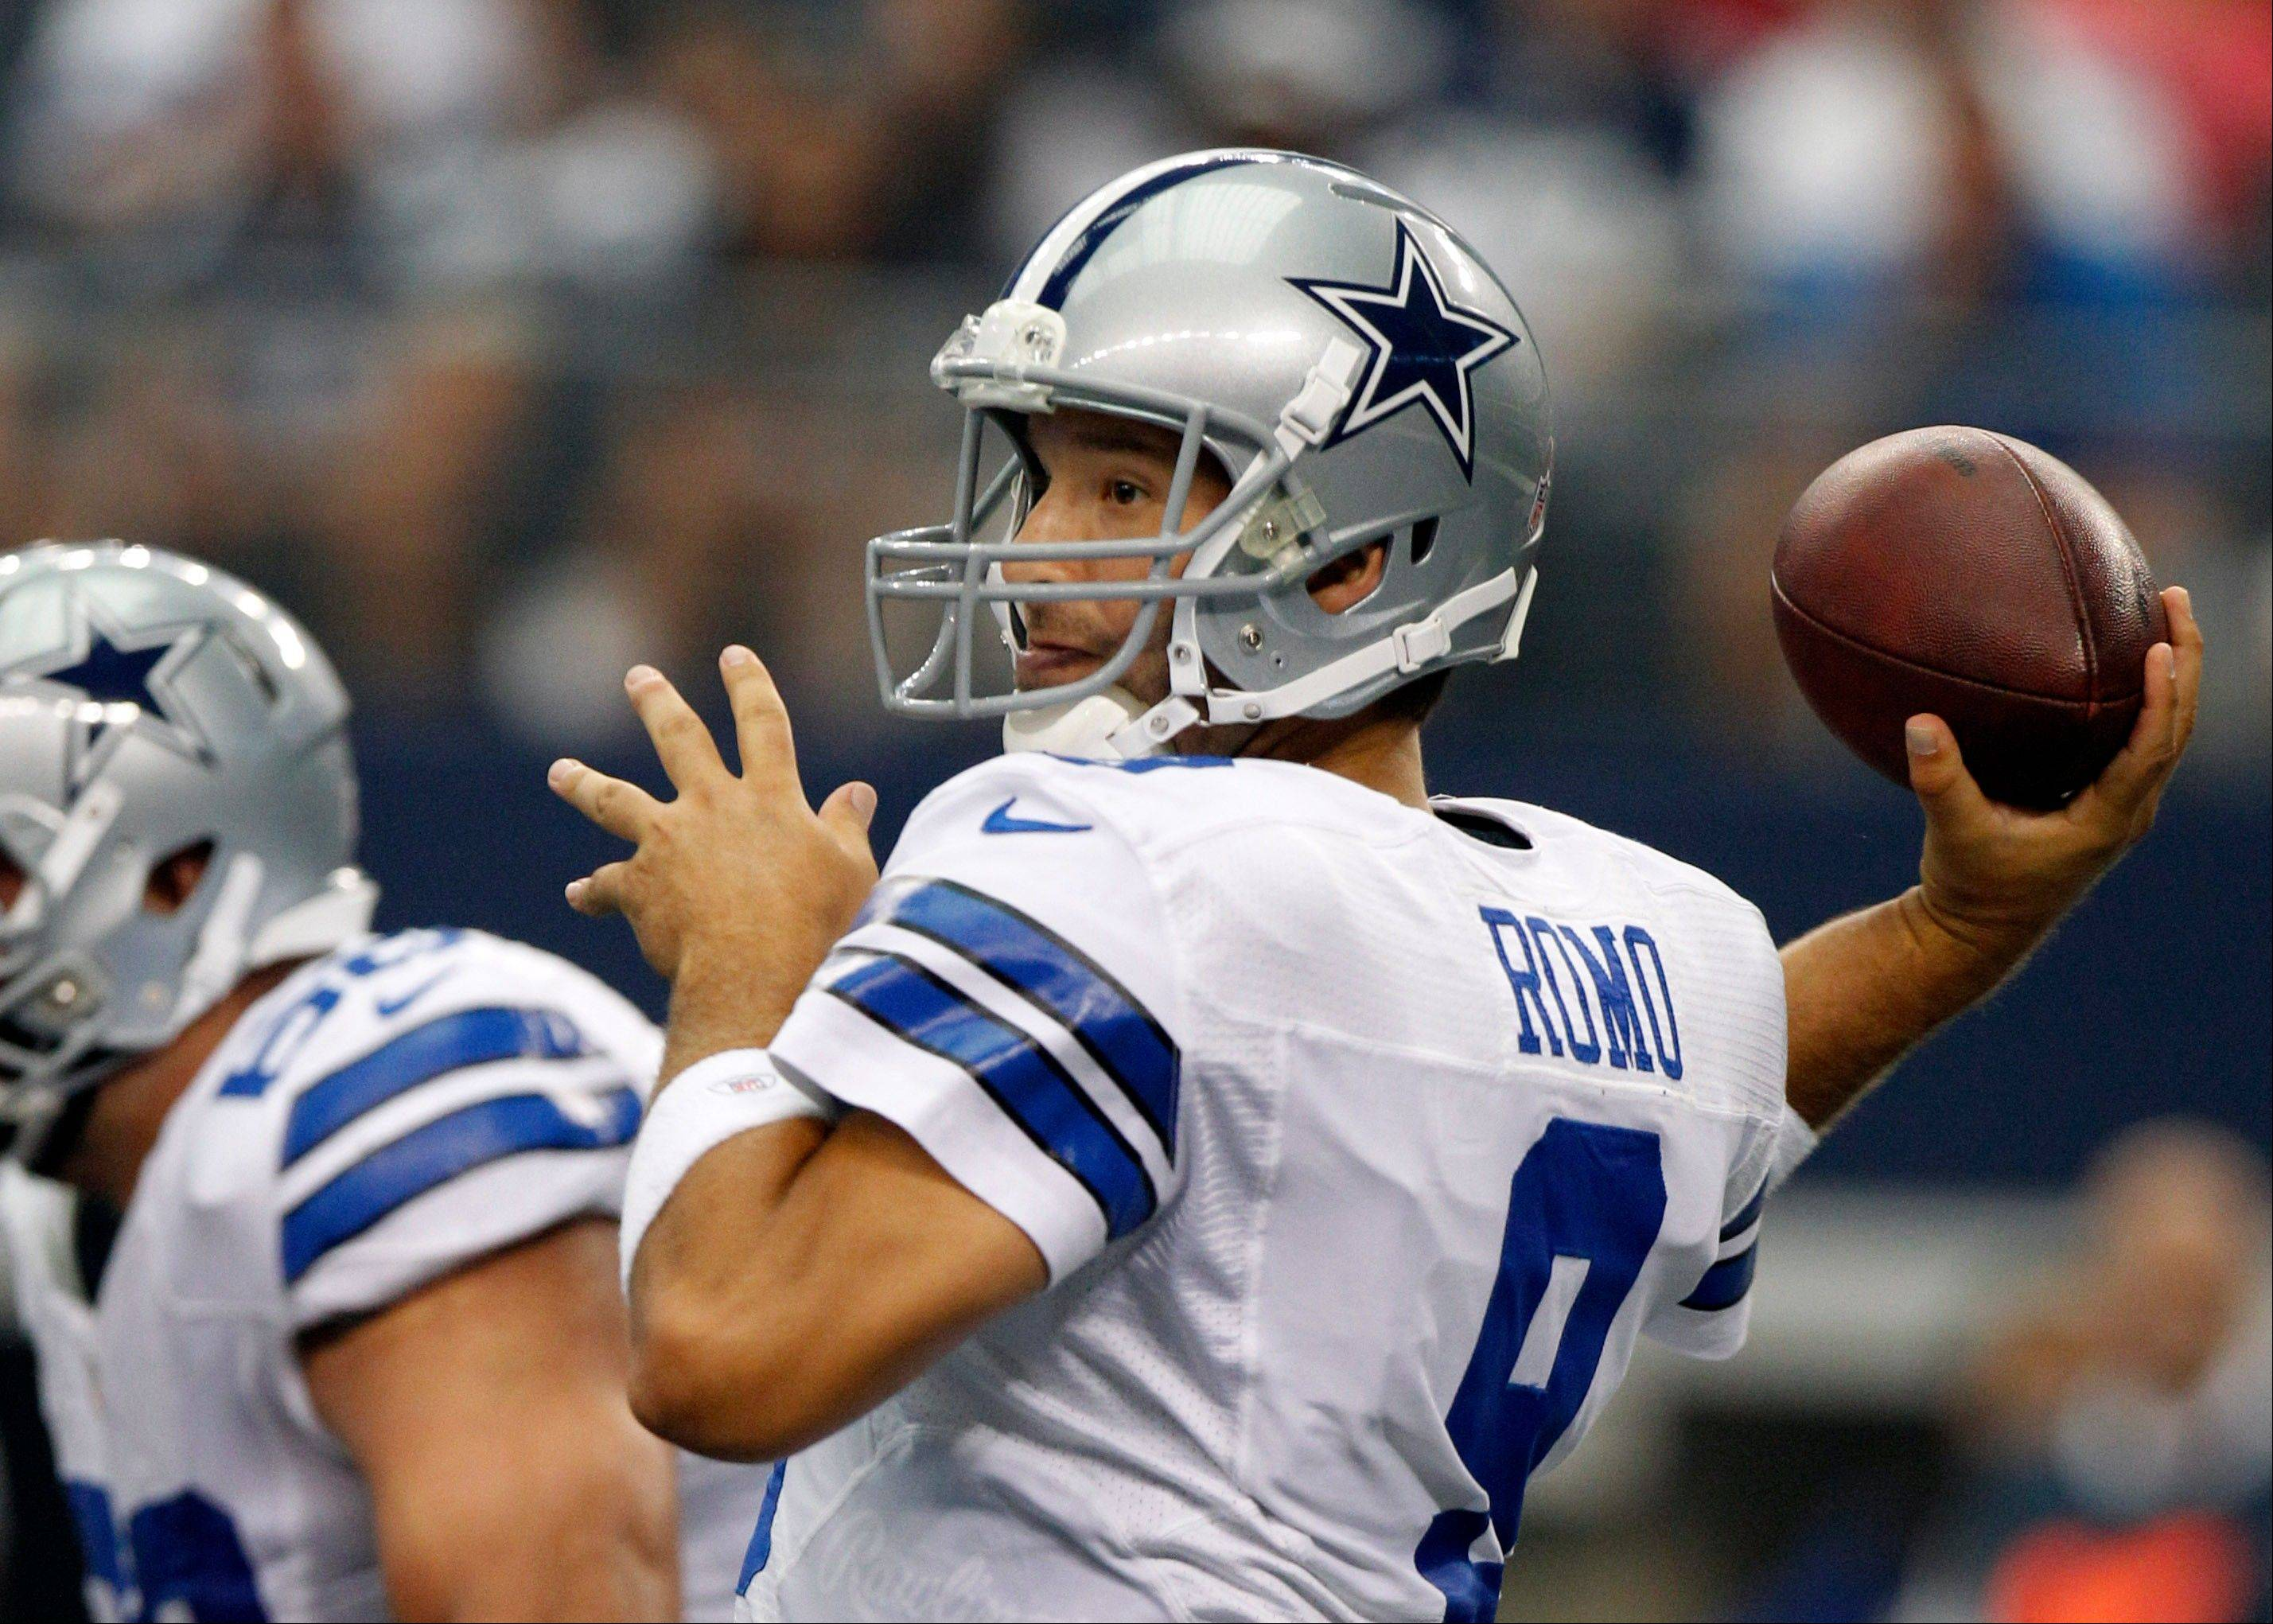 Dallas Cowboys quarterback Tony Romo (9) passes the ball against the Tampa Bay Buccaneers during the first half of an NFL football game on Sunday, Sept. 23, 2012, in Arlington, Texas.